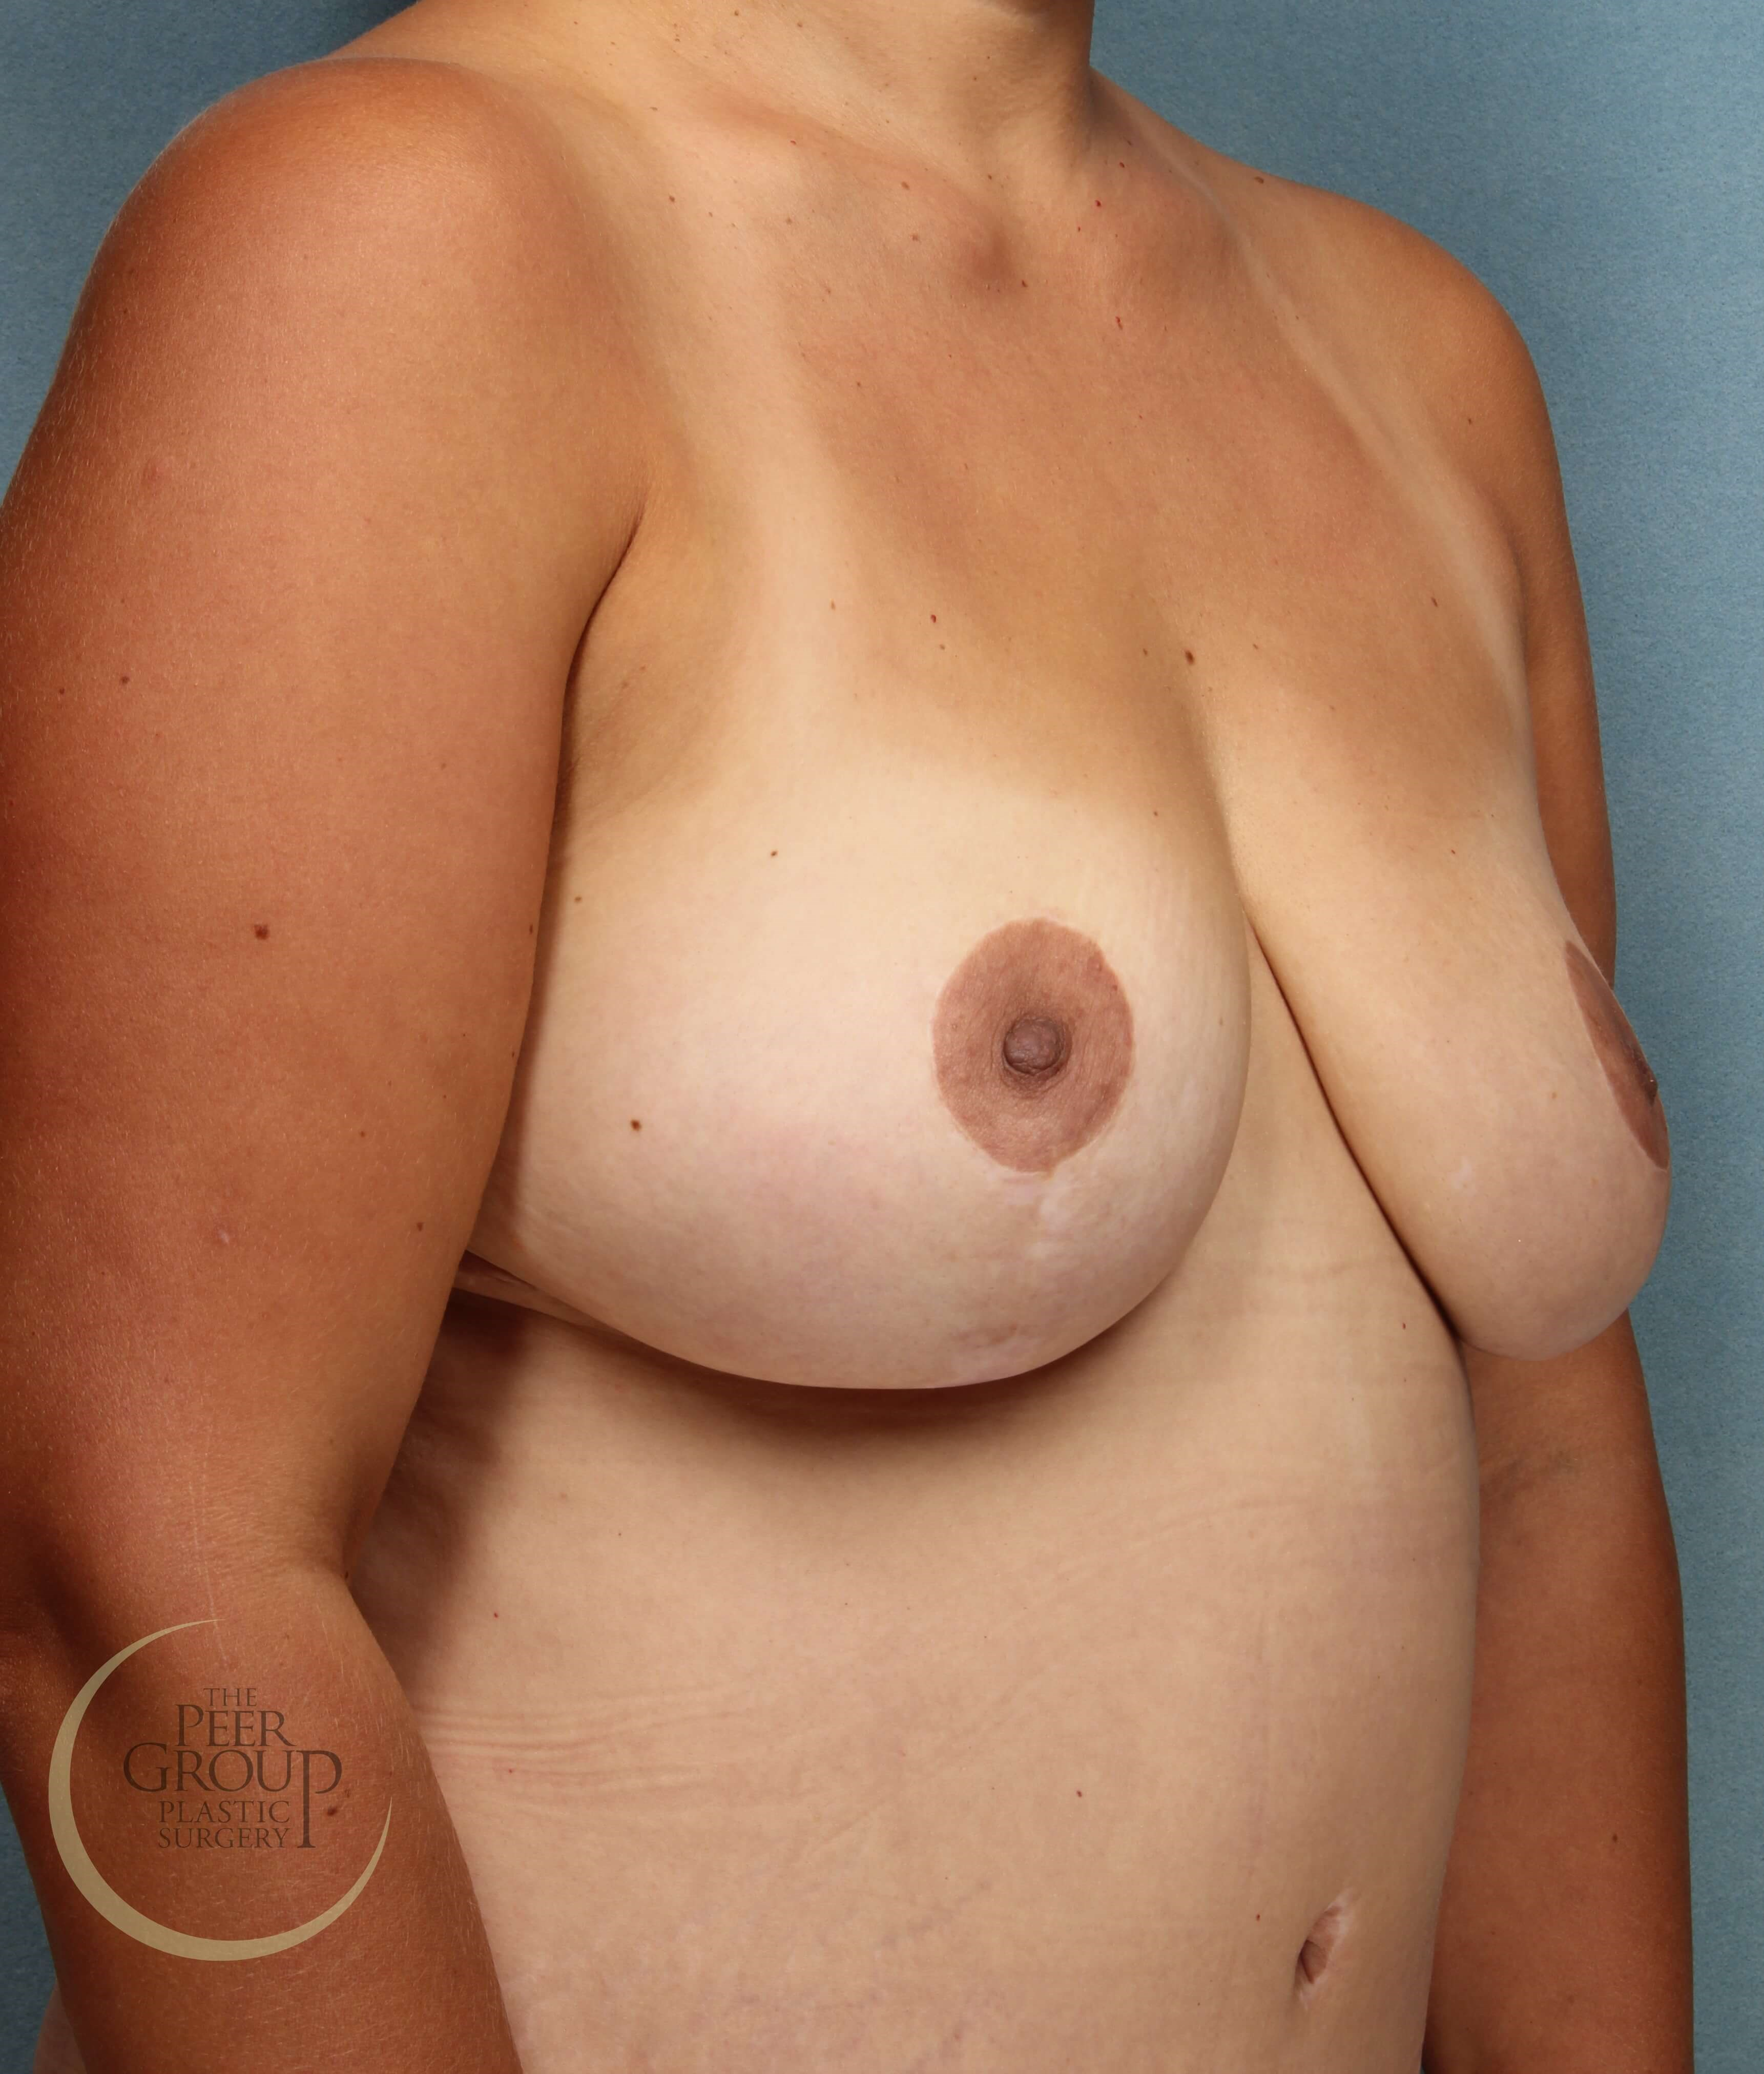 3/4 View After Breast Reduction